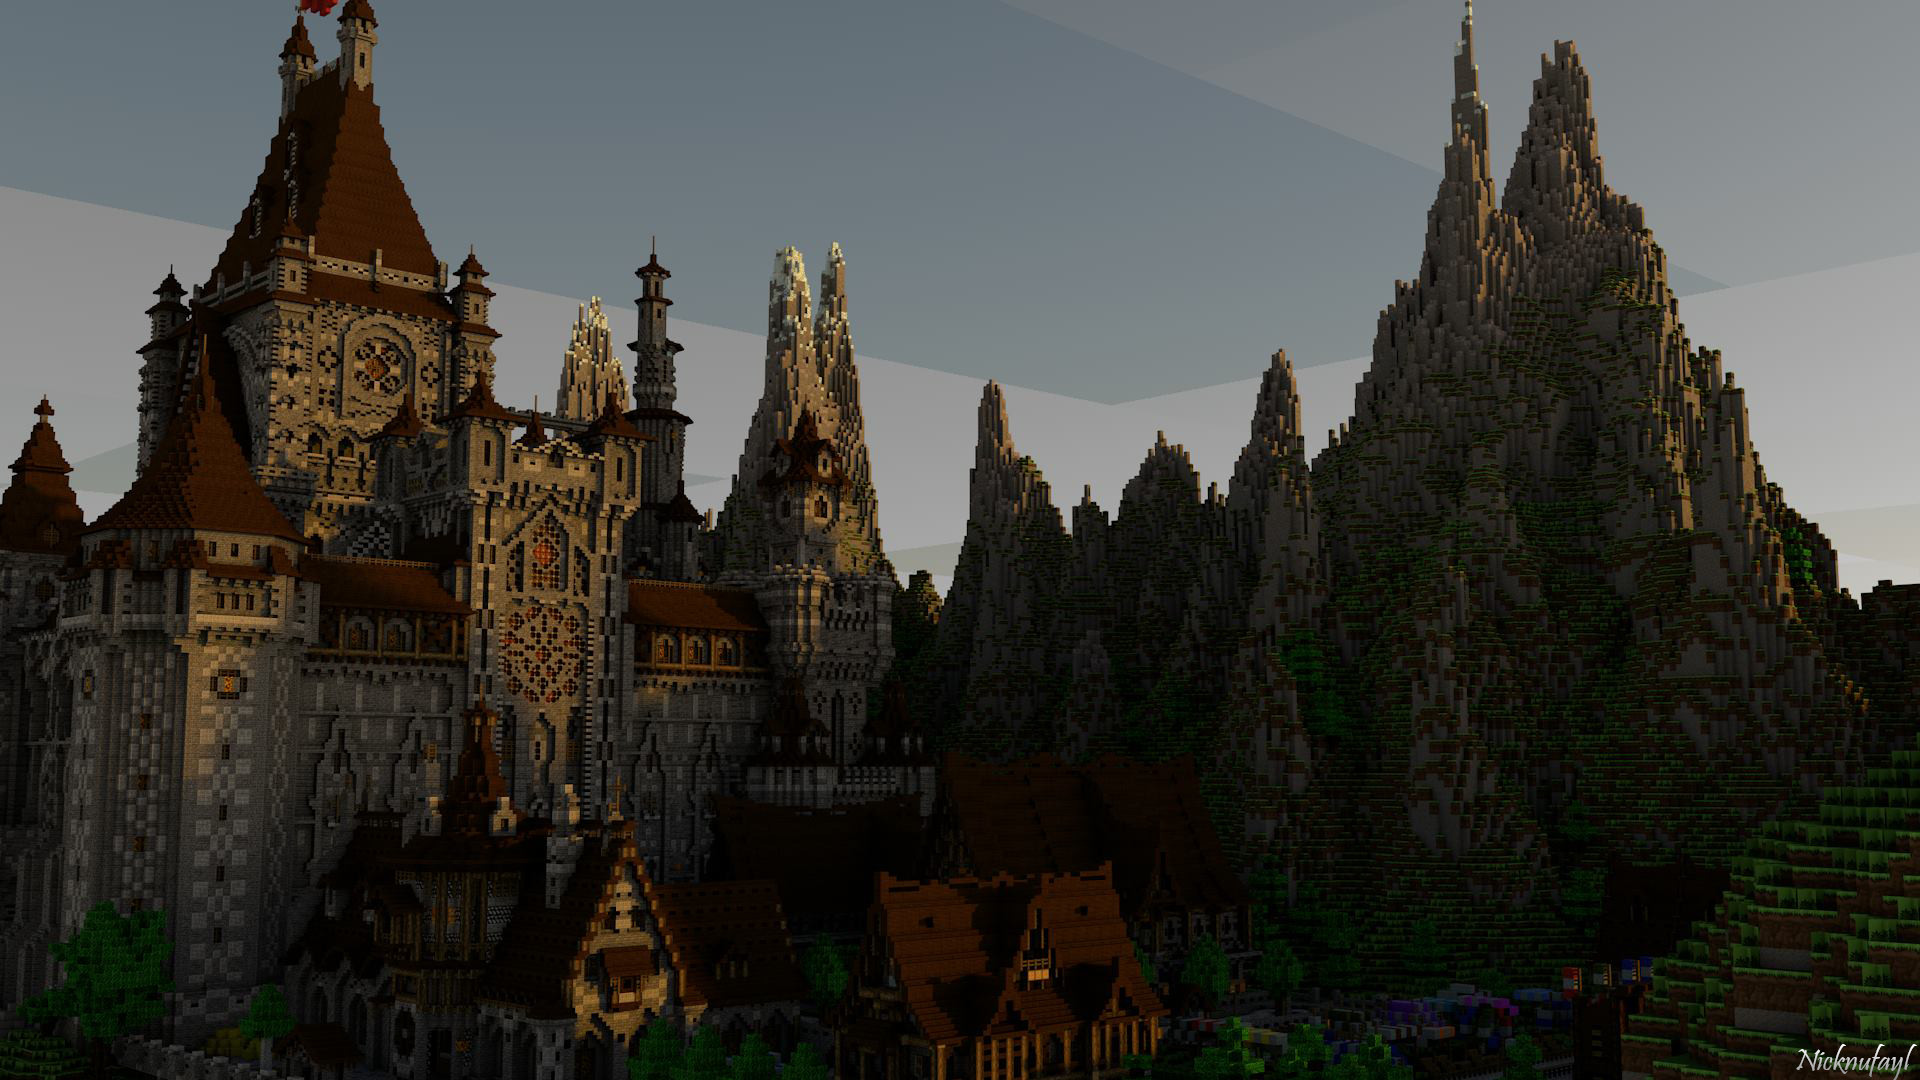 1920x1080 Minecraft Castle Wallpaper HD by Nicknufayl on DeviantArt